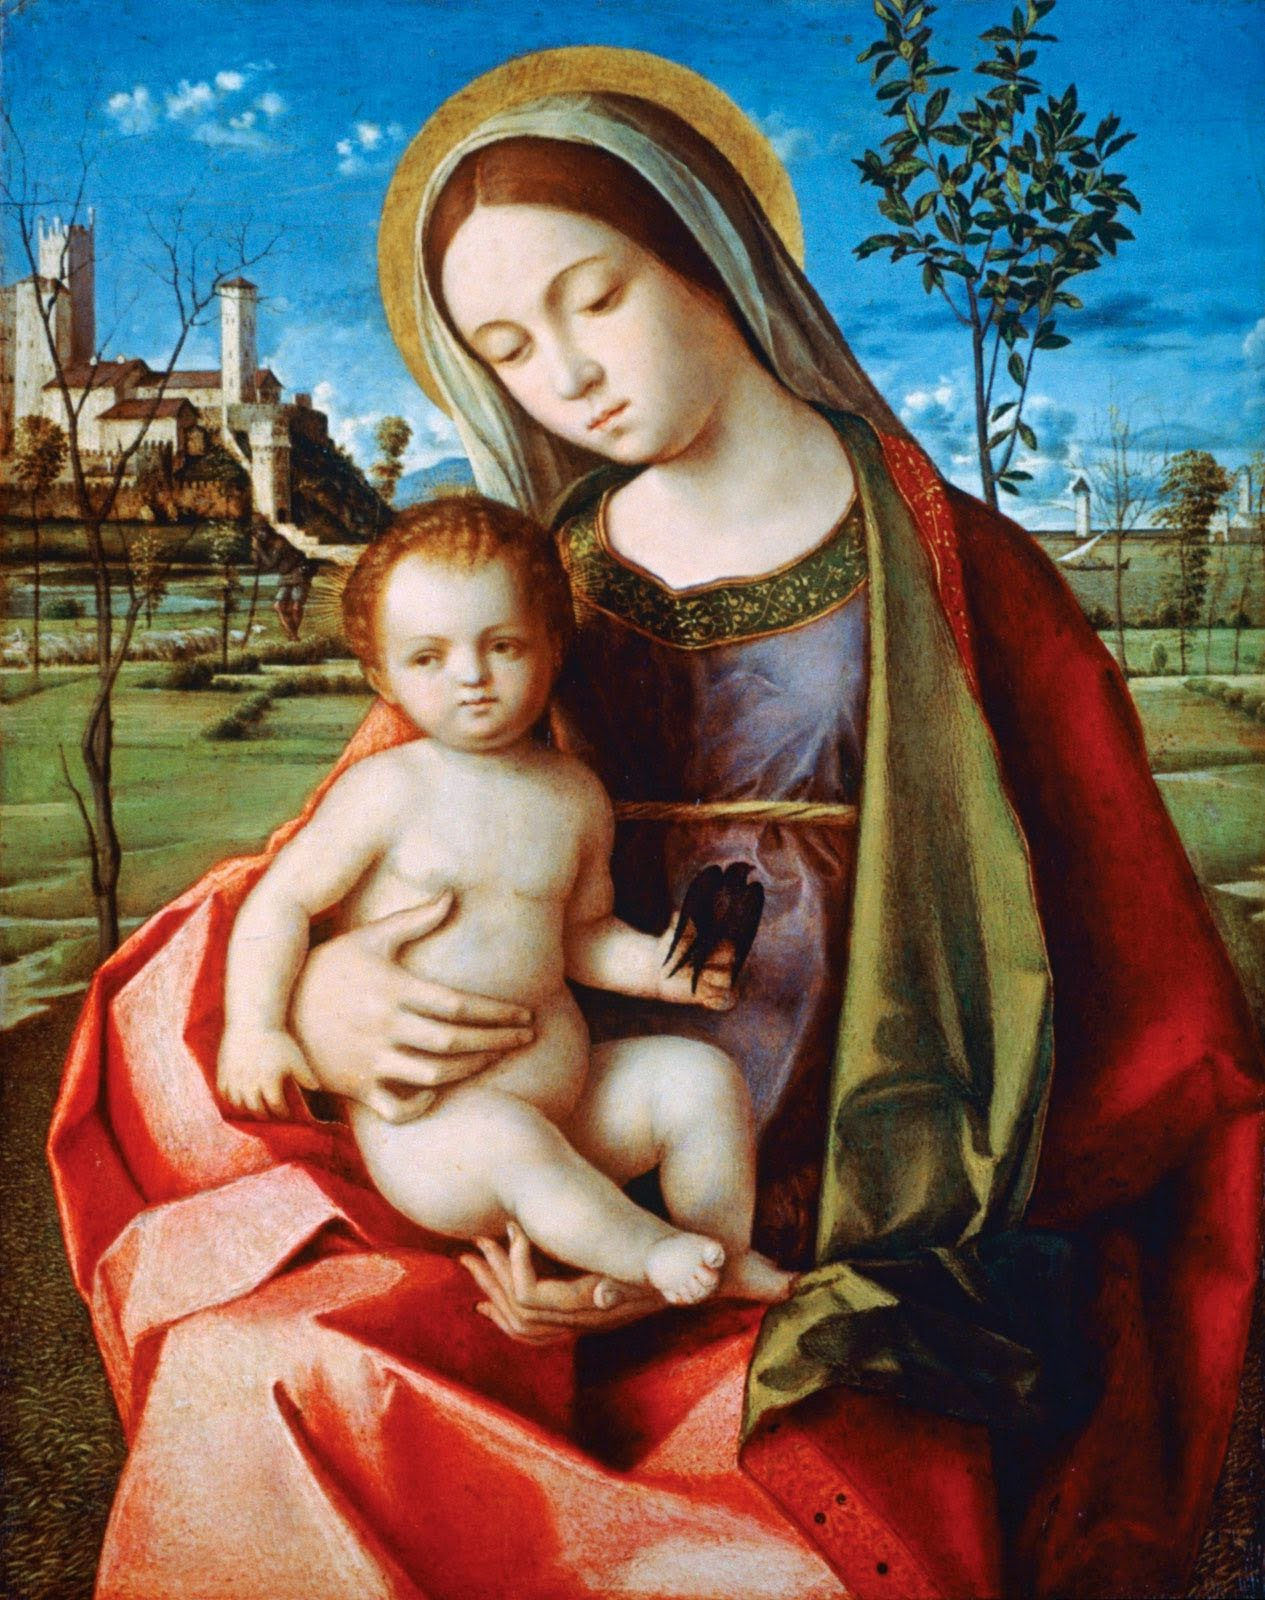 Renaissance painting depicting baby Jesus on the lap of the Virgin Mary